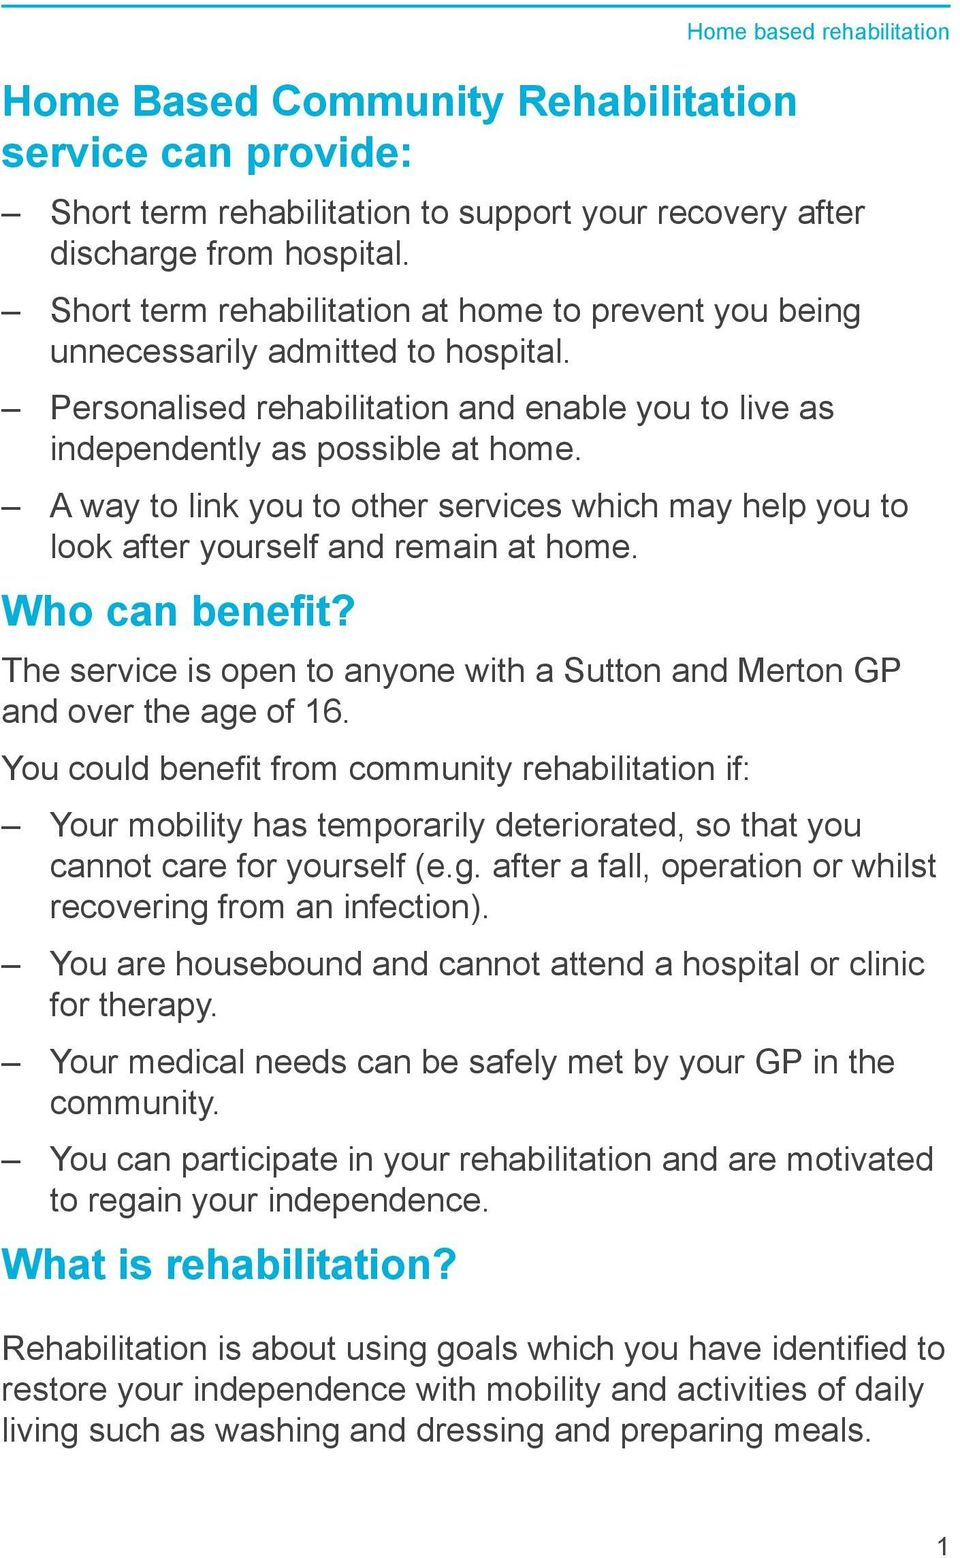 A way to link you to other services which may help you to look after yourself and remain at home. Who can benefit? The service is open to anyone with a Sutton and Merton GP and over the age of 16.